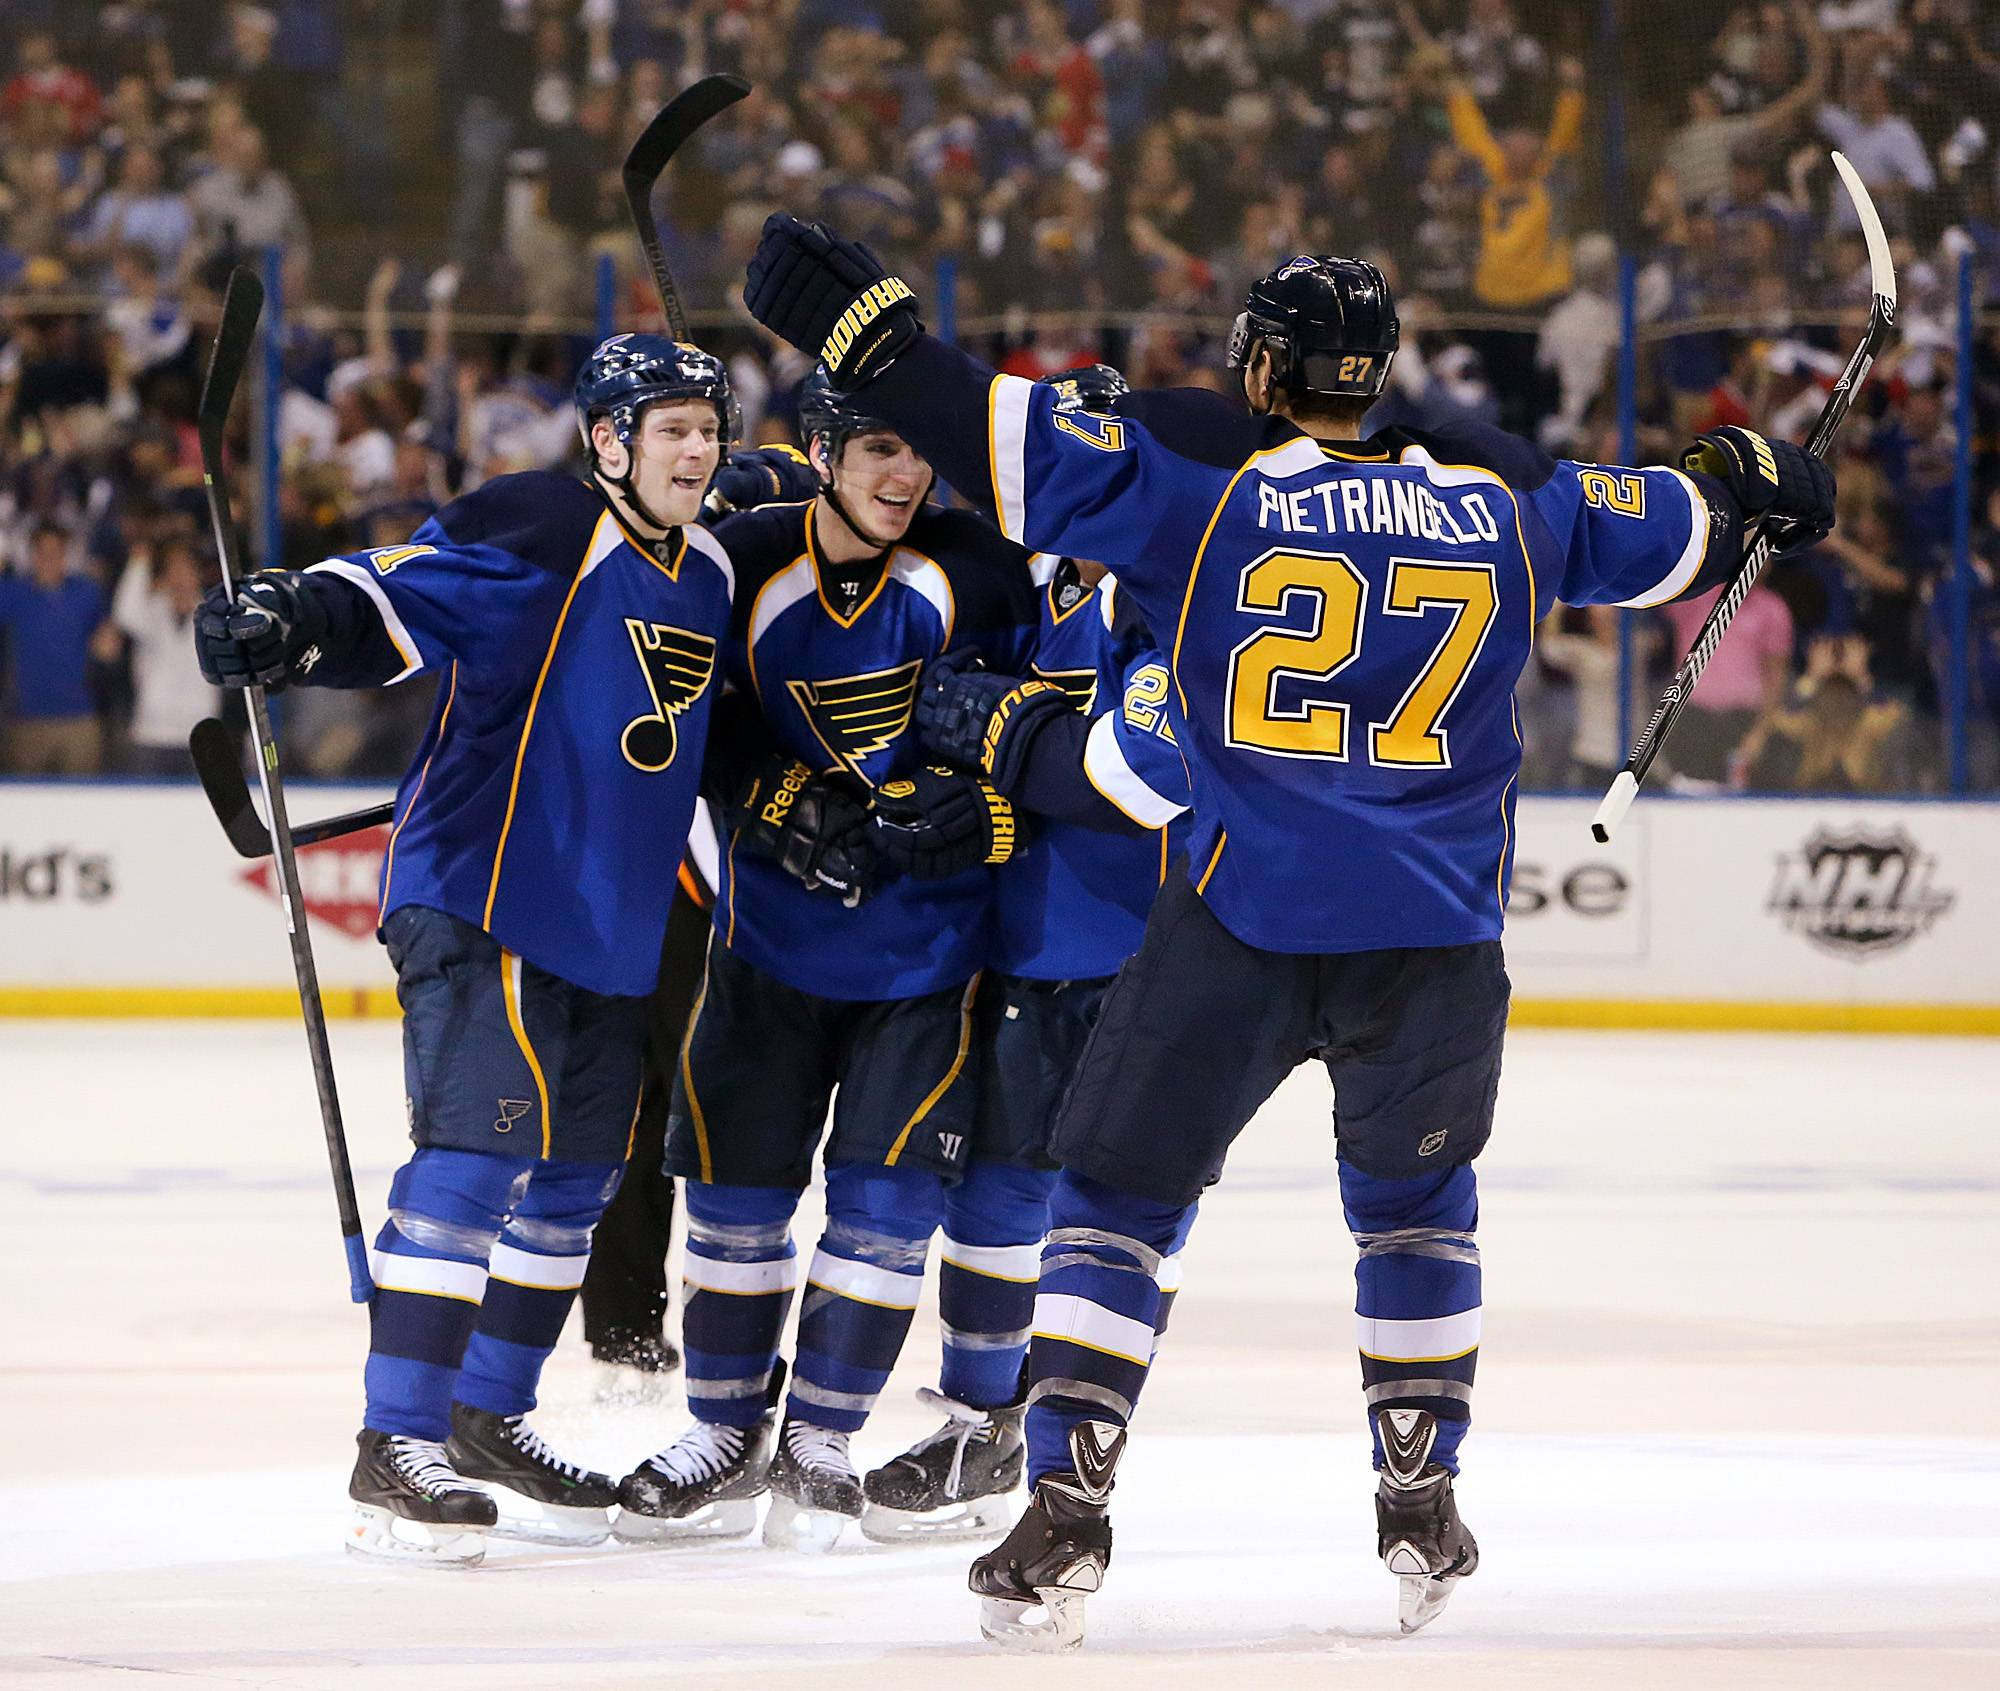 St. Louis Blues right wing Vladimir Tarasenko, left, celebrates with teammates after scoring to tie the game with seconds remaining in regulation during Game 2 of a first-round NHL hockey playoff series against the Chicago Blackhawks, Saturday, April 19, 2014, in St. Louis.